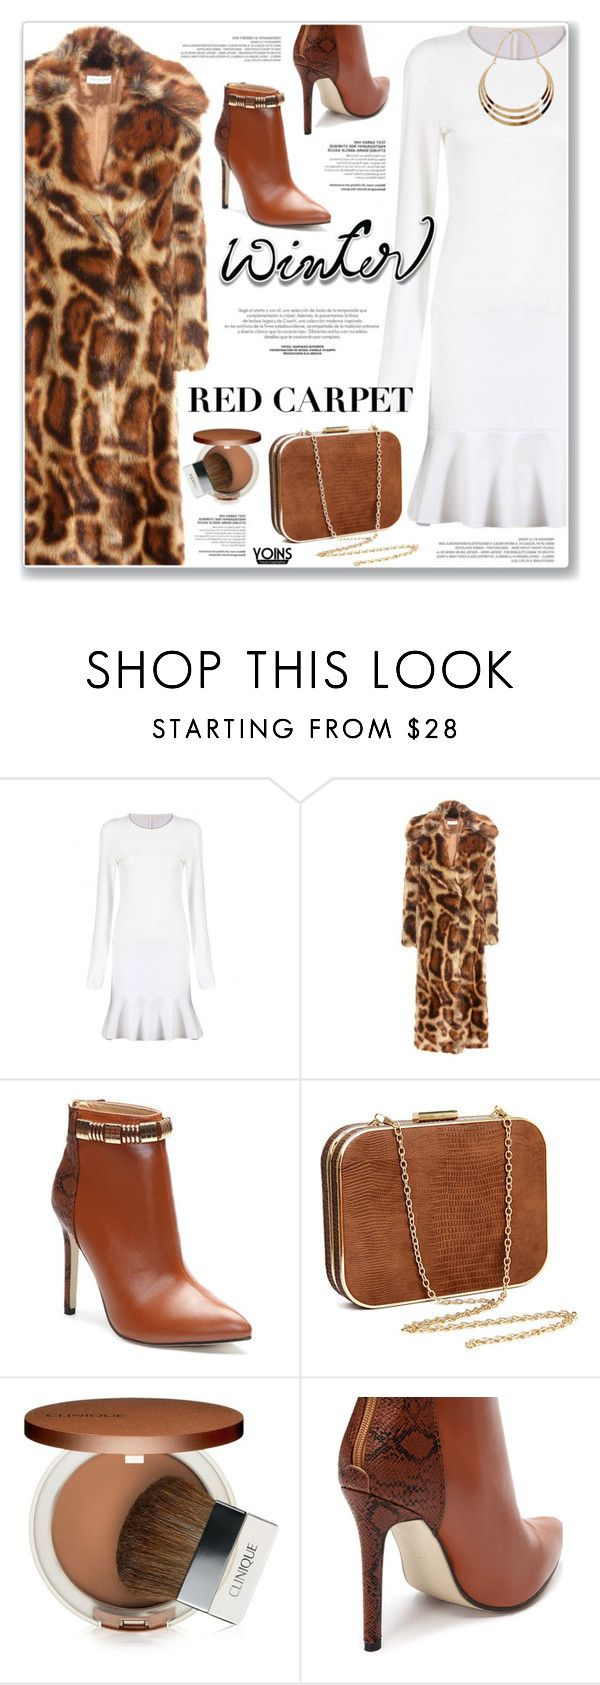 """LOVE YOINS"" by nanawidia ❤ liked on Polyvore featuring Dries Van Noten and Clinique"